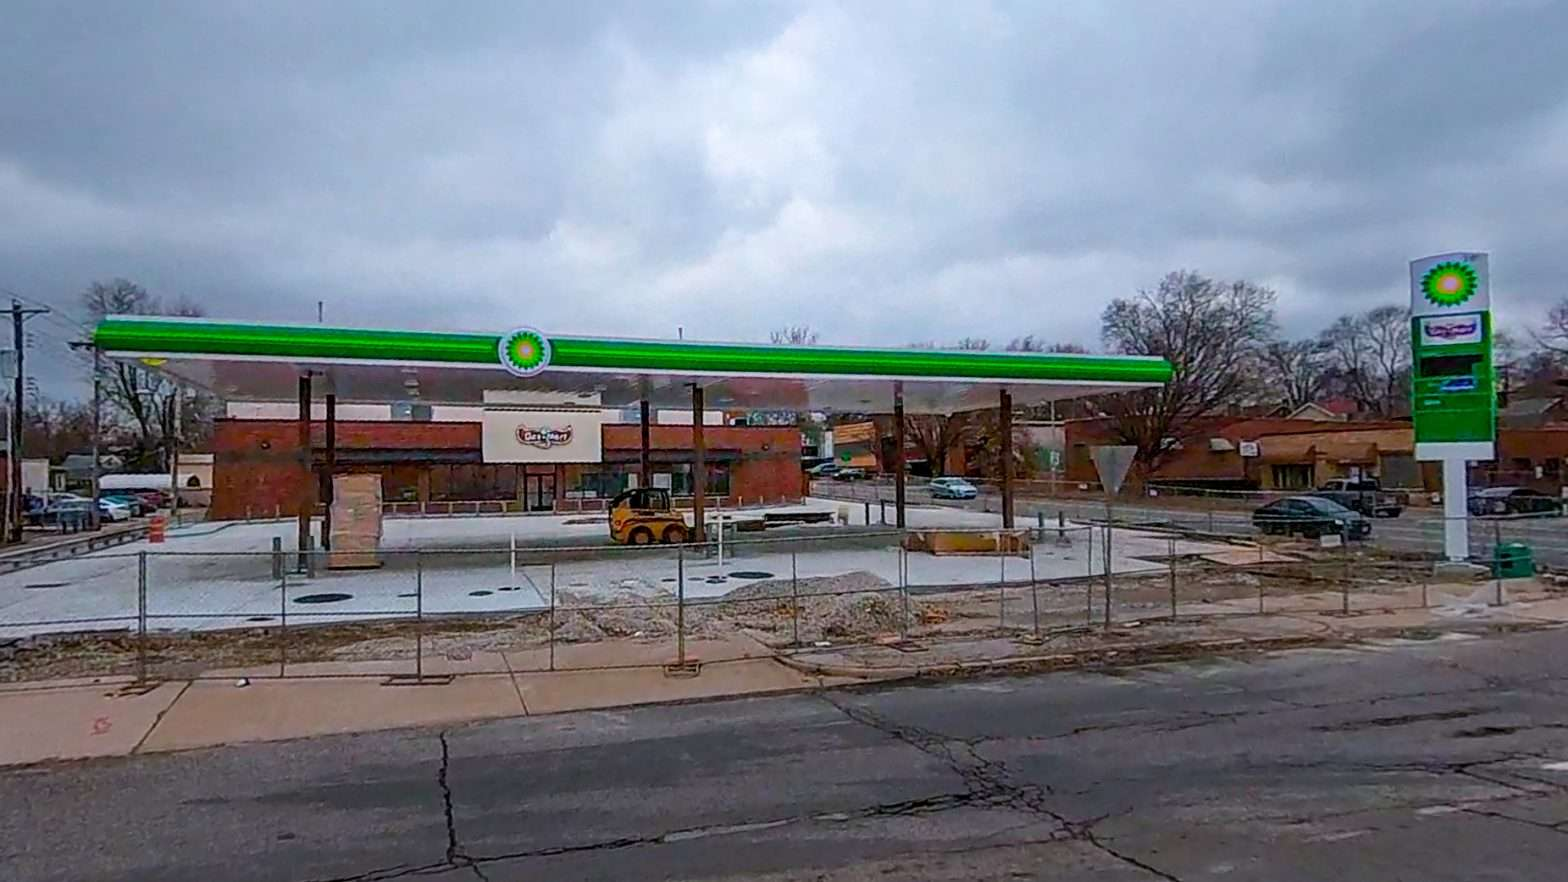 Gas Mart Olive and Kingsland University City construction in Feb. 2021. credit craig currie